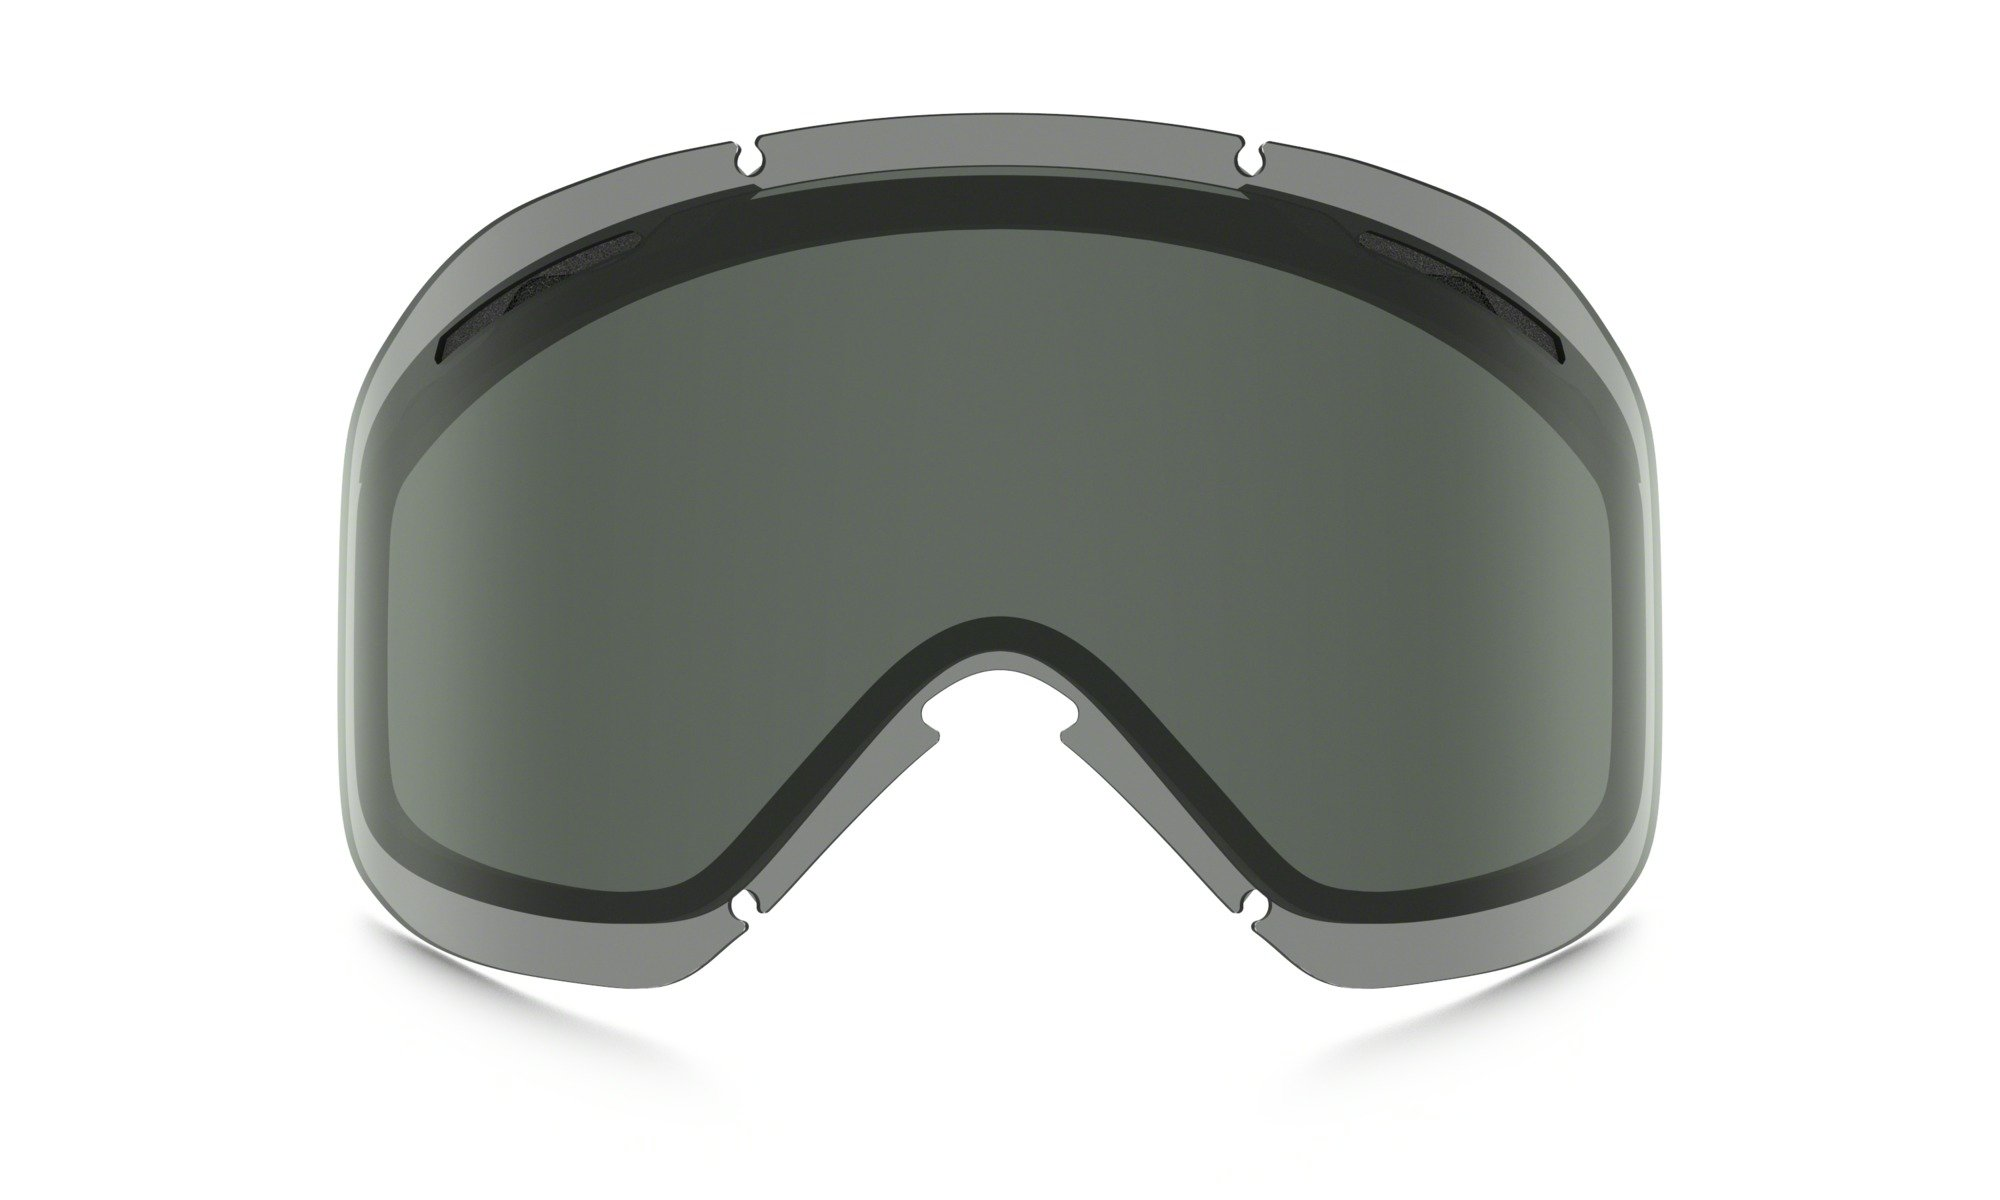 oakley black iridium goggles  Oakley Goggle Lens Color / Tint Guide